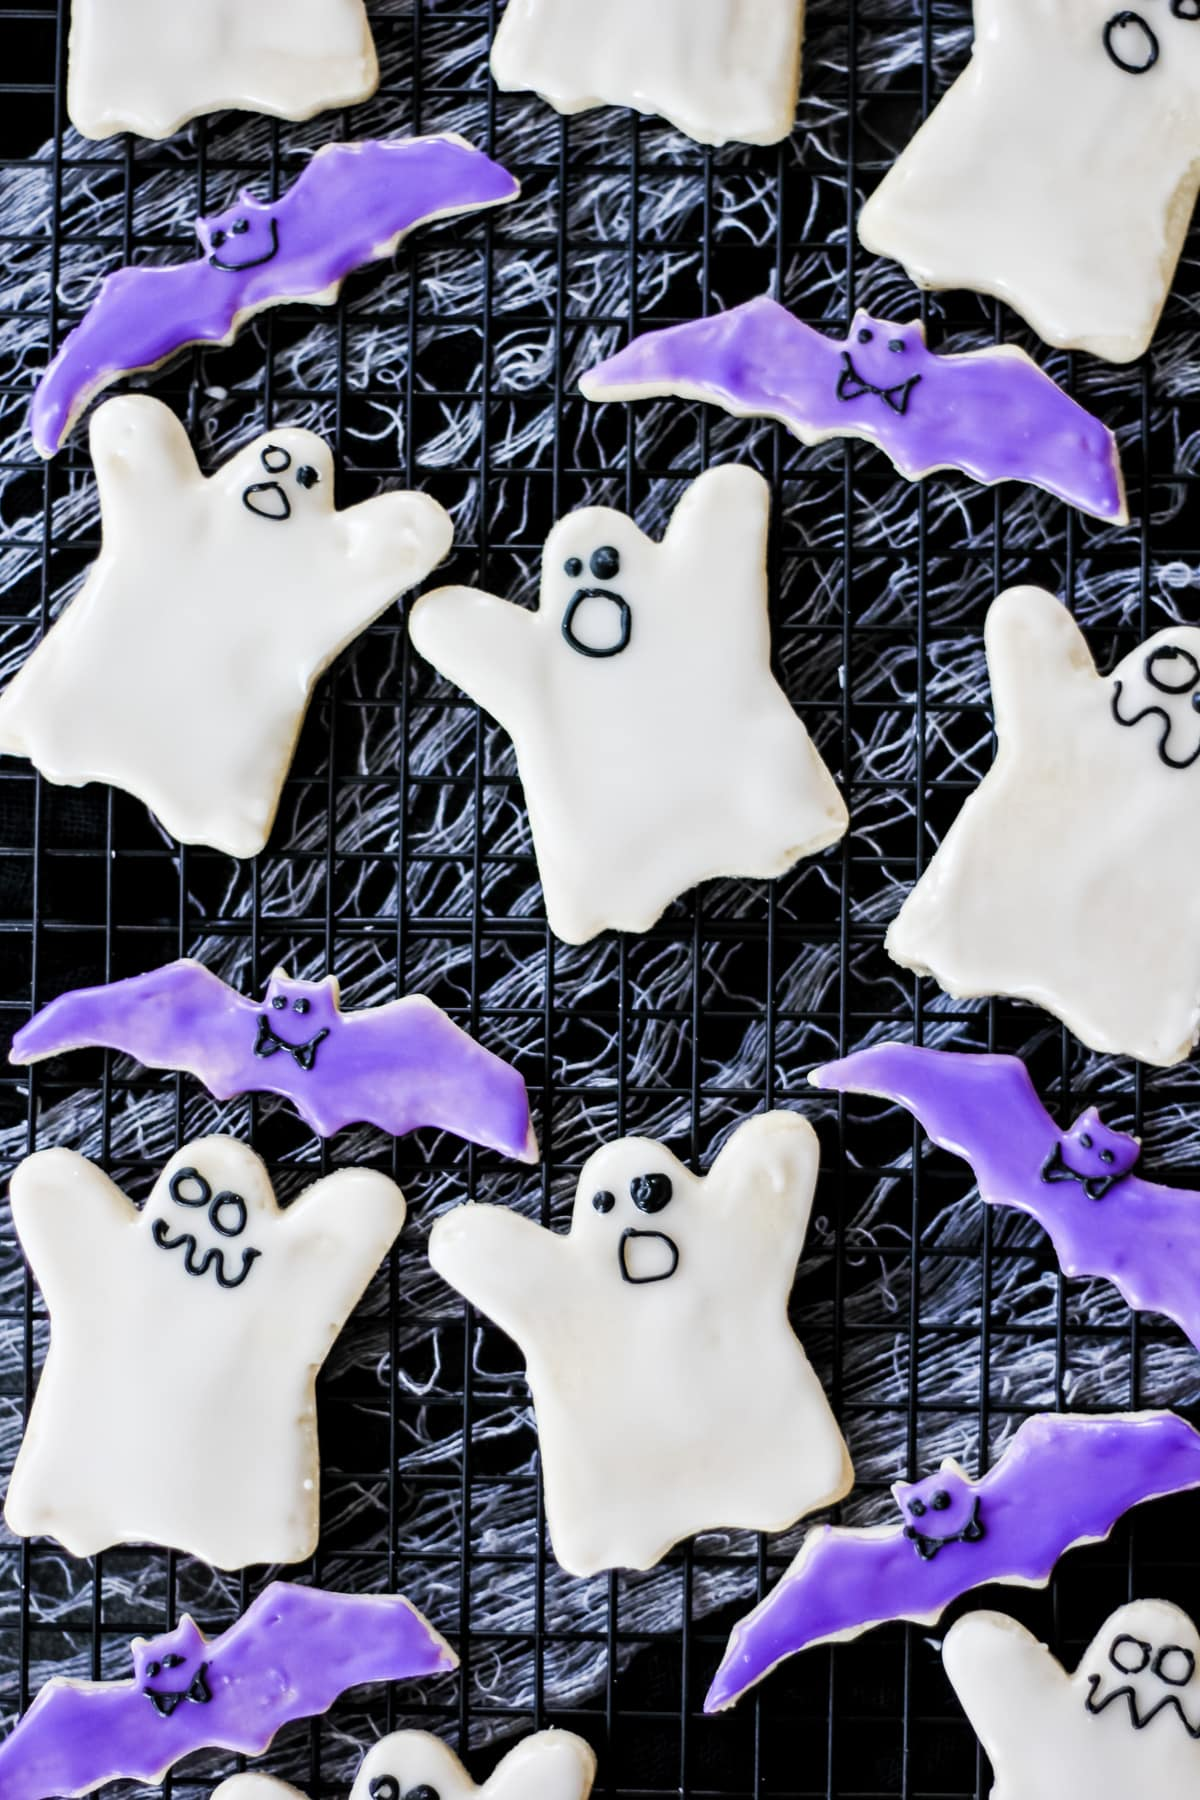 A tray of decorated Bat and Ghost Halloween Cookies